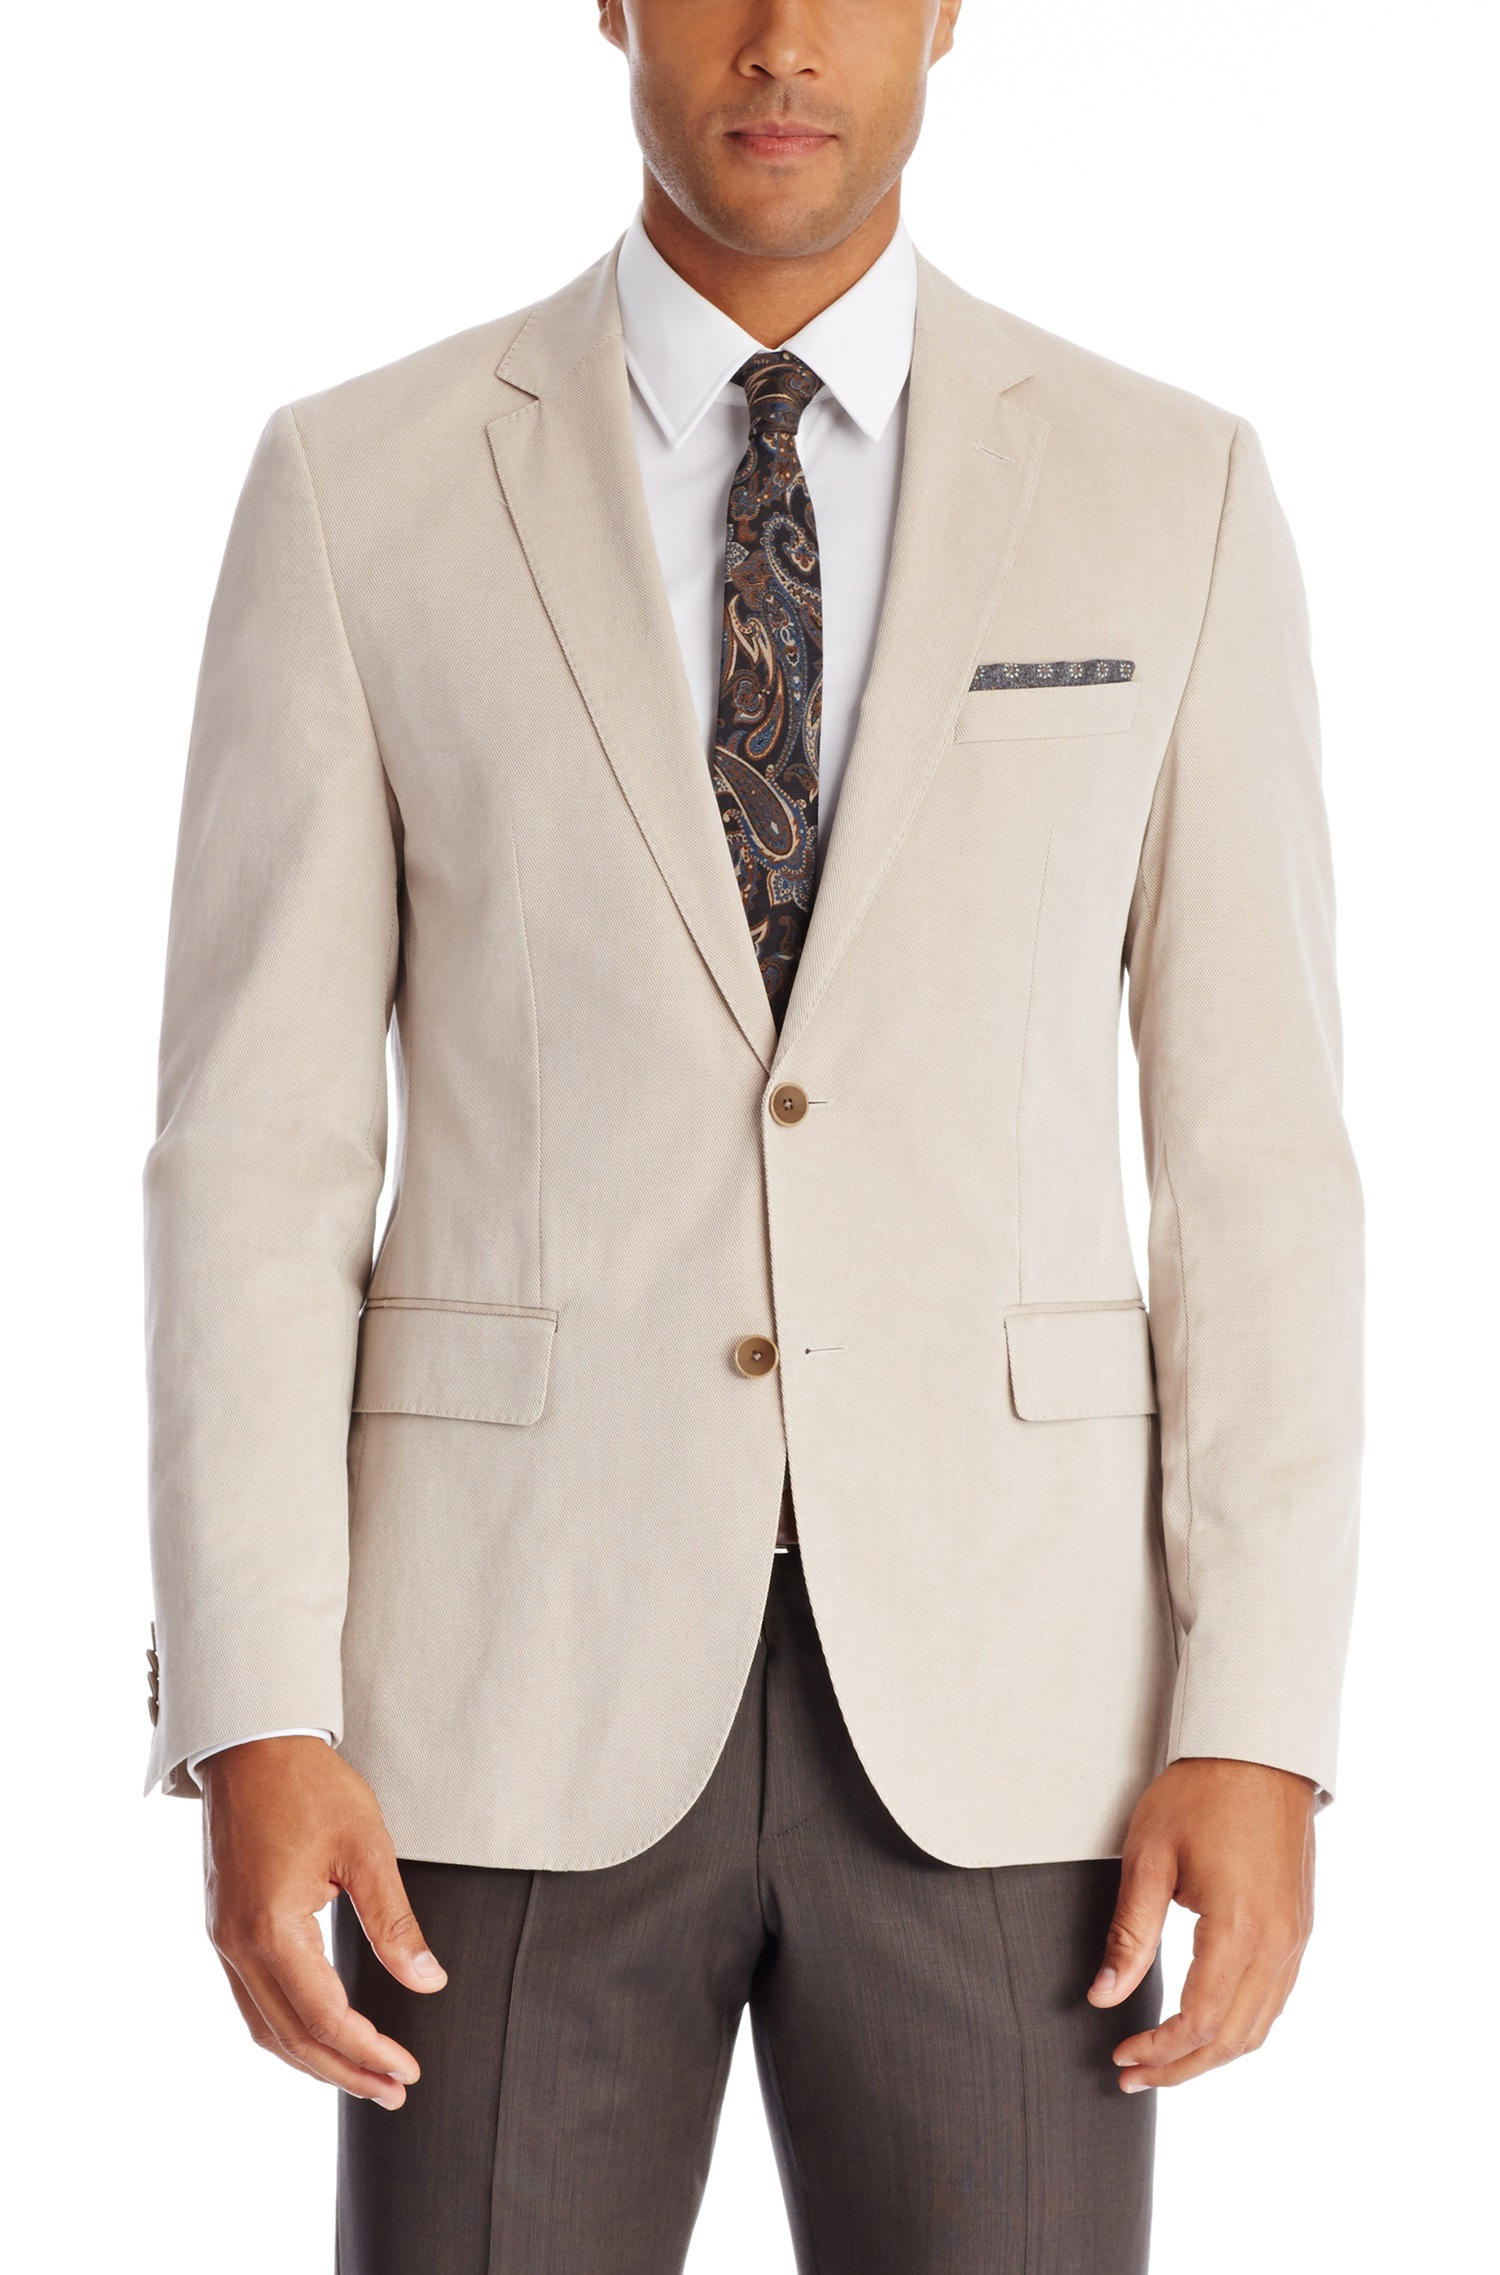 Sportcoats & Blazers: Free Shipping on orders over $45 at private-dev.tk - Your Online Sportcoats & Blazers Store! Get 5% in rewards with Club O!